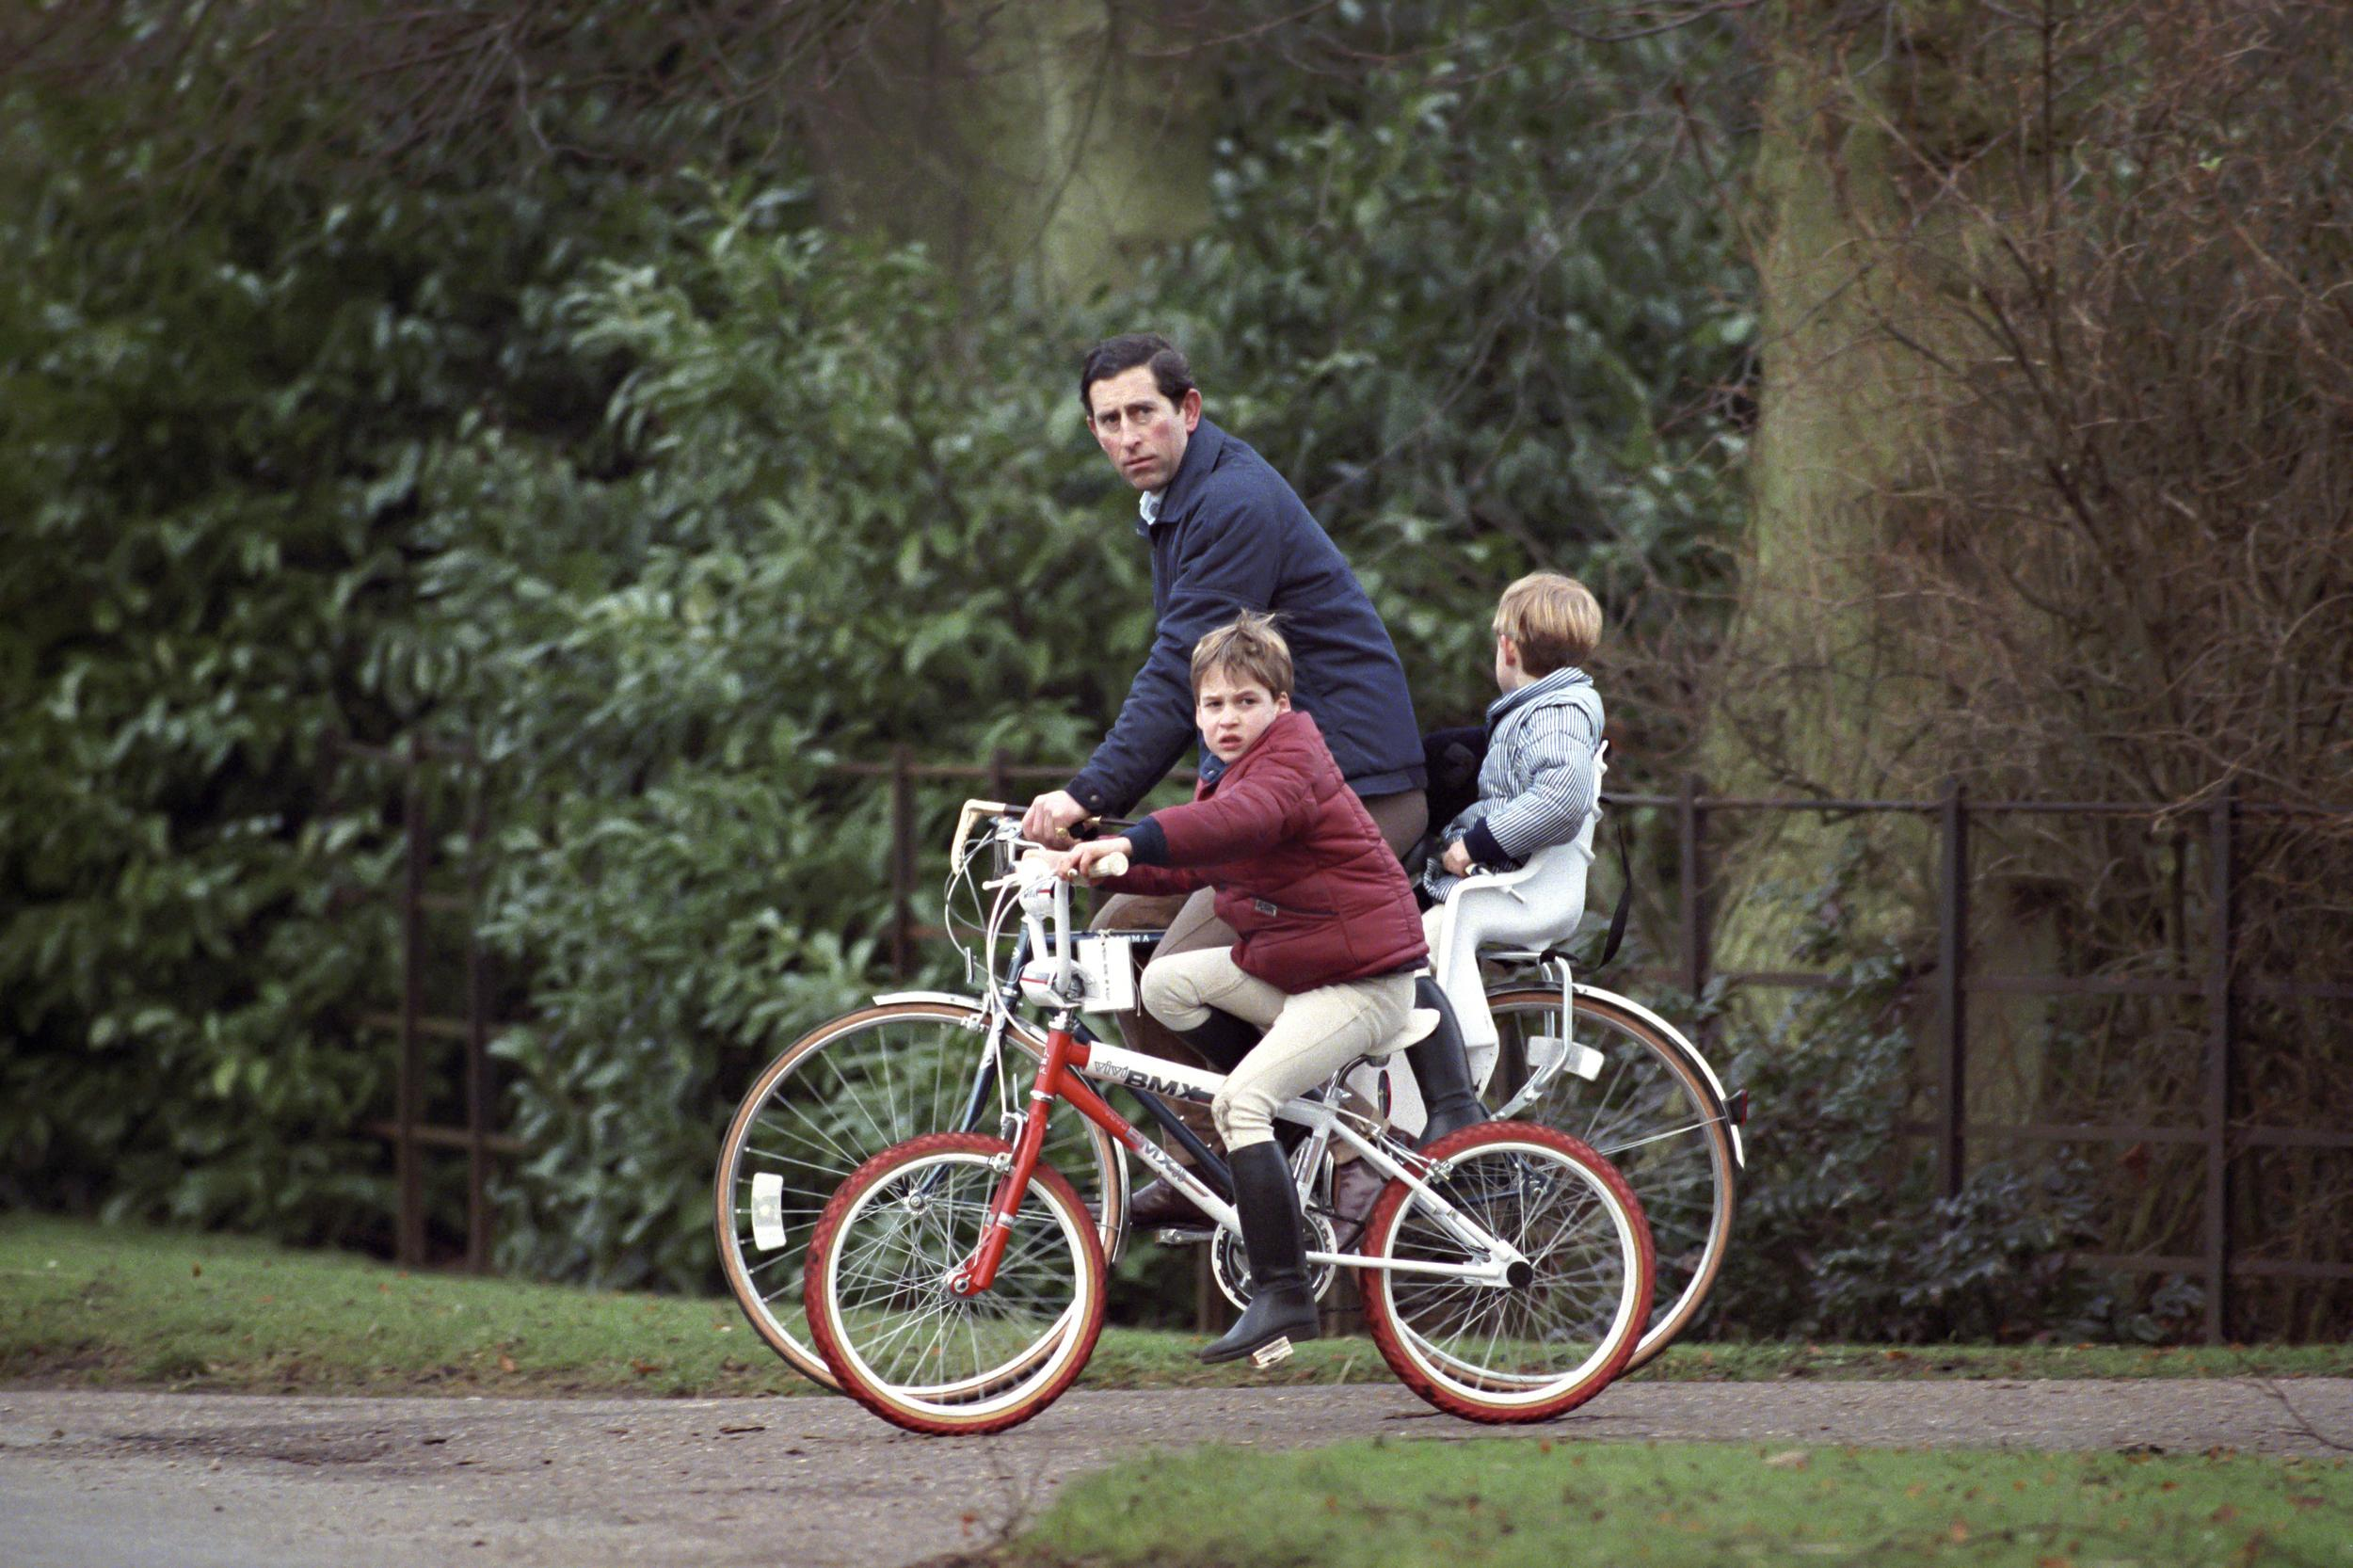 Prince Charles, Prince William And Prince Harry On Bikes Returning From The Stables, At Sandringham Estate, In Norfolk. (Photo by Julian Parker/UK Press via Getty Images)